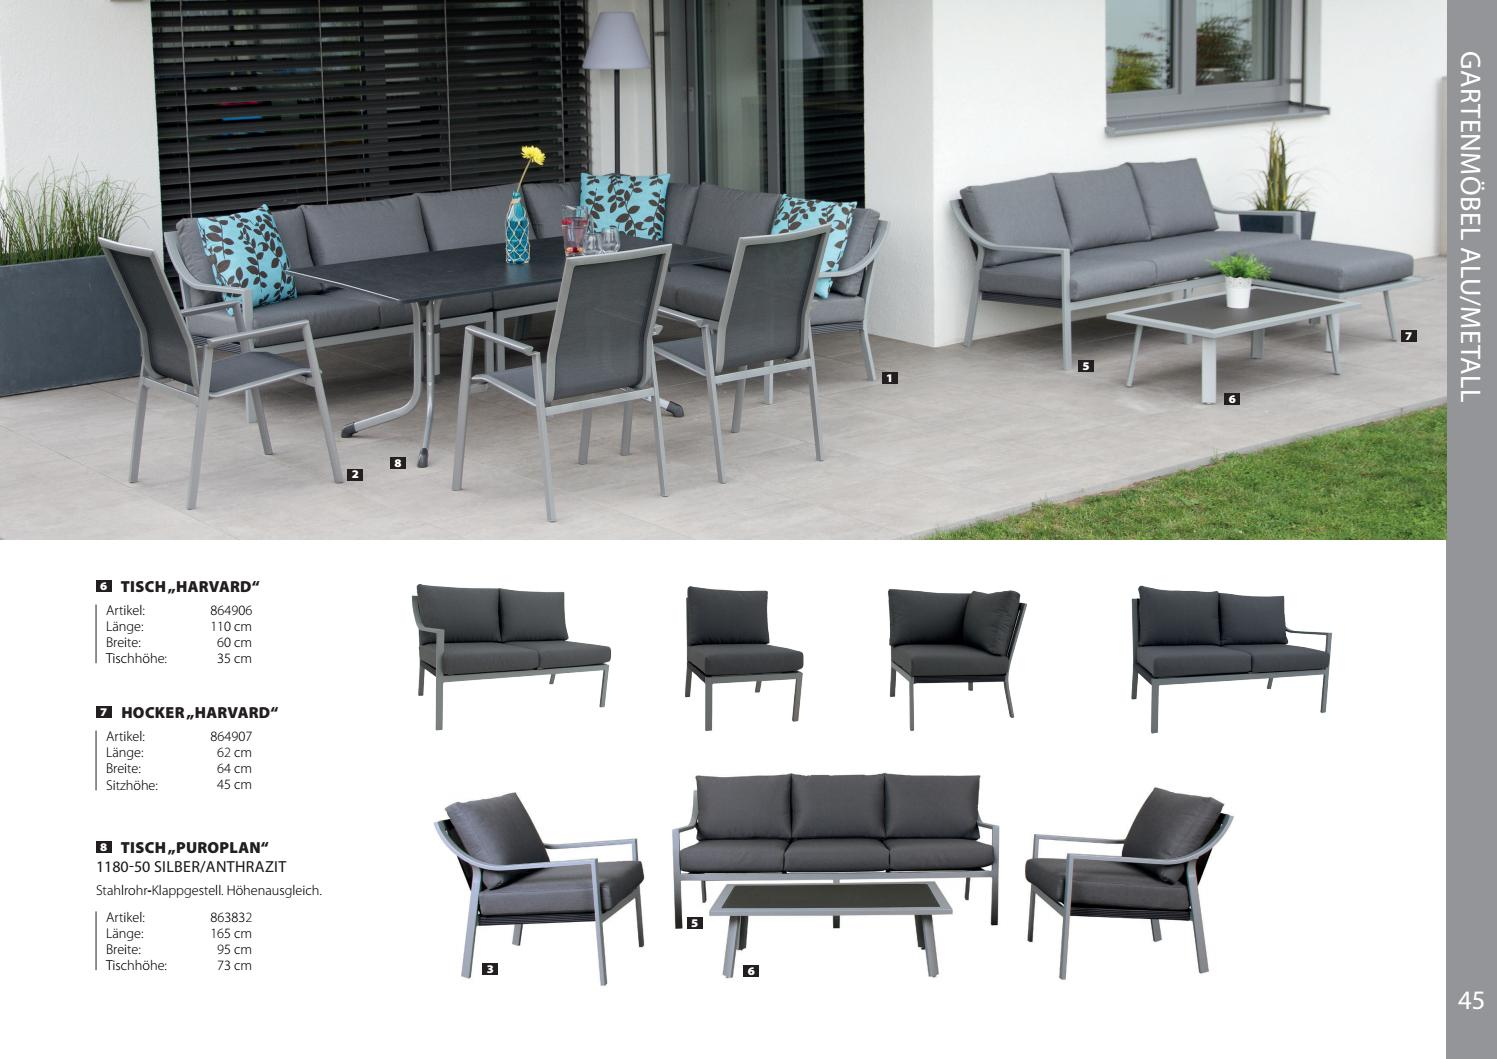 Alu Hocker Klappbar Aldi Gartenmbel Hocker Alu Mississippi Lounge Hocker Mix Grau